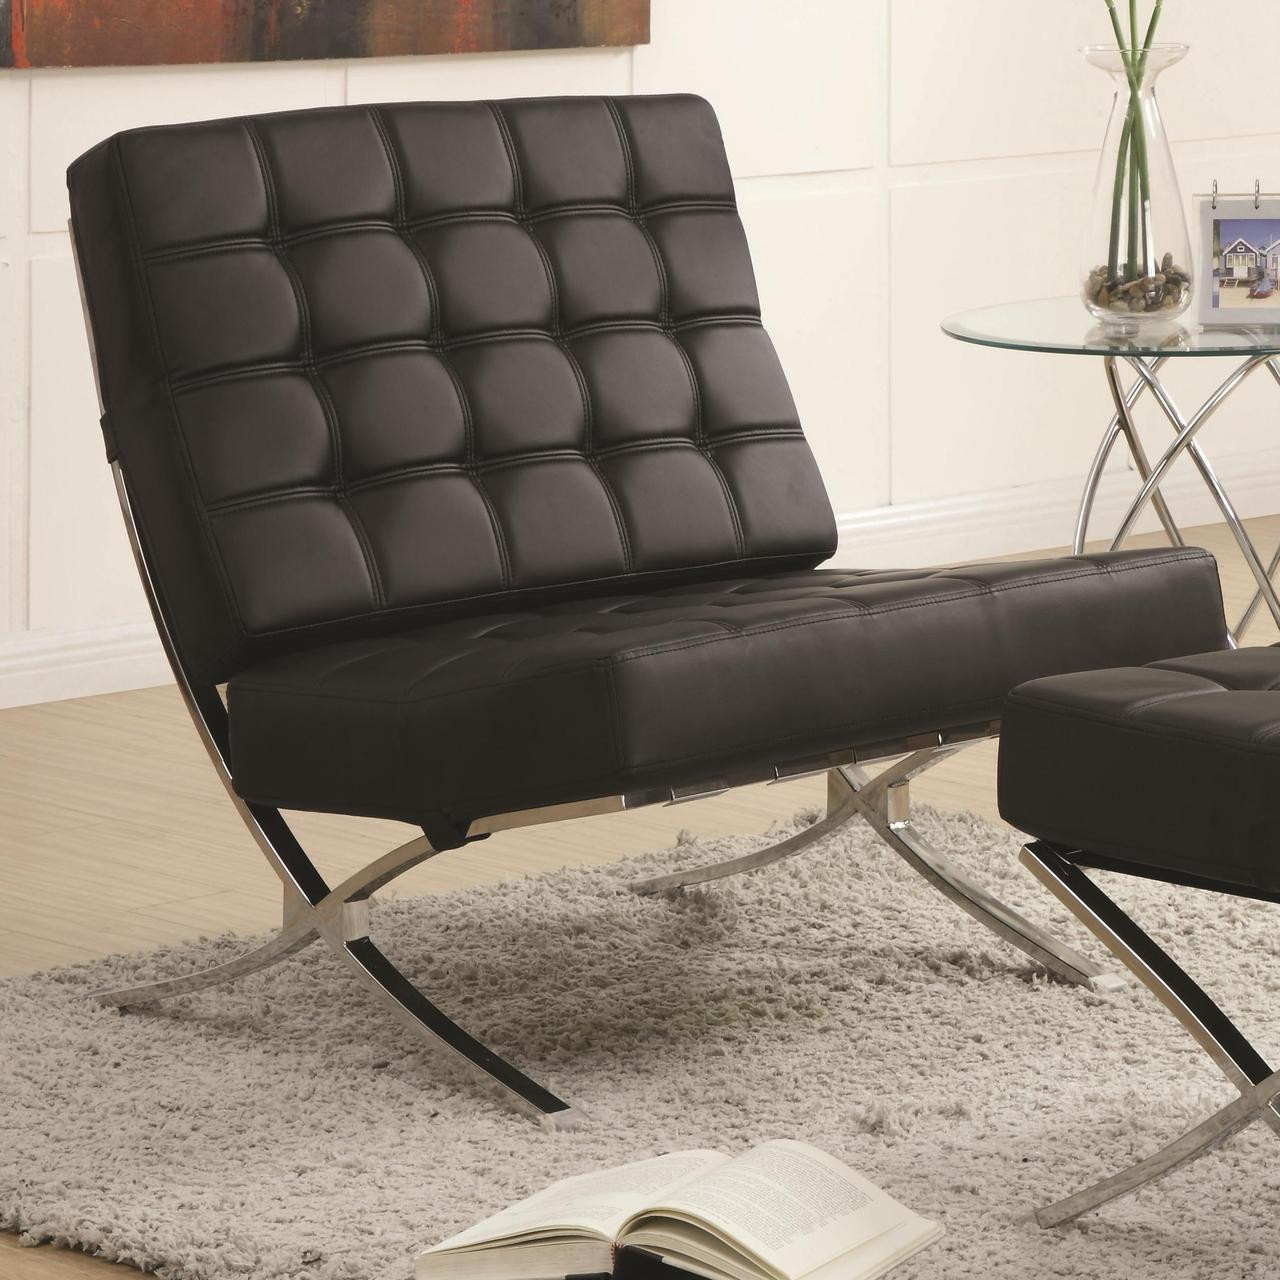 Stupendous Jacksen Black Leather Accent Chair And Ottoman Ocoug Best Dining Table And Chair Ideas Images Ocougorg